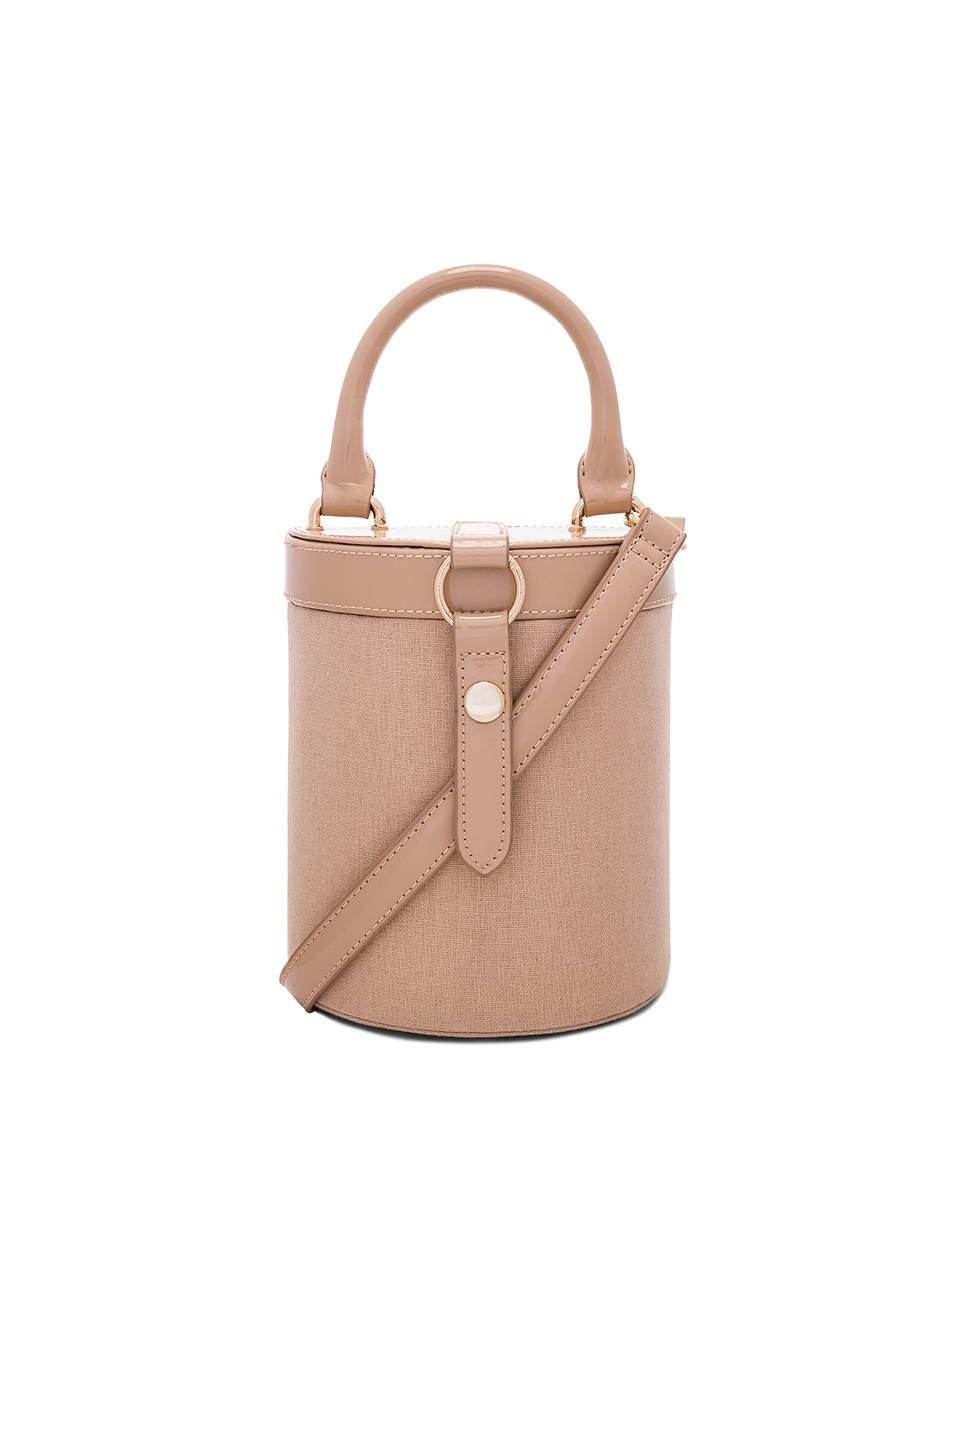 LPA Gia Bag in Tan Multi